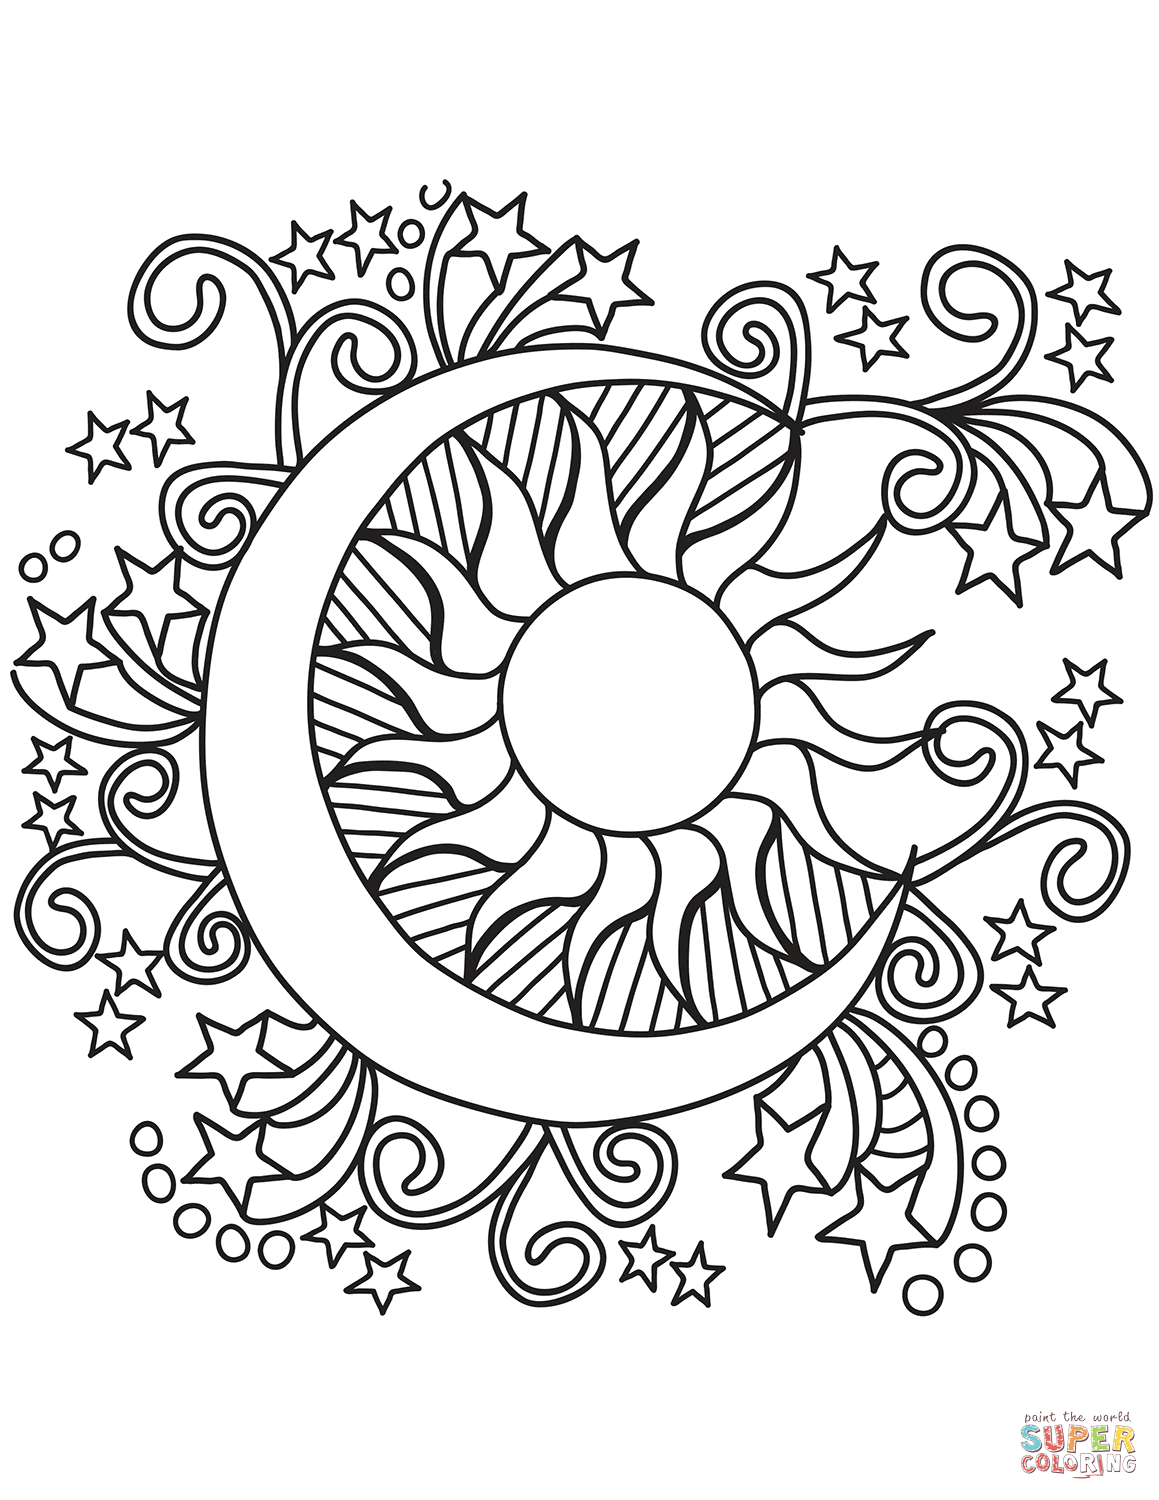 Space & Astronomy coloring pages | Free Coloring Pages